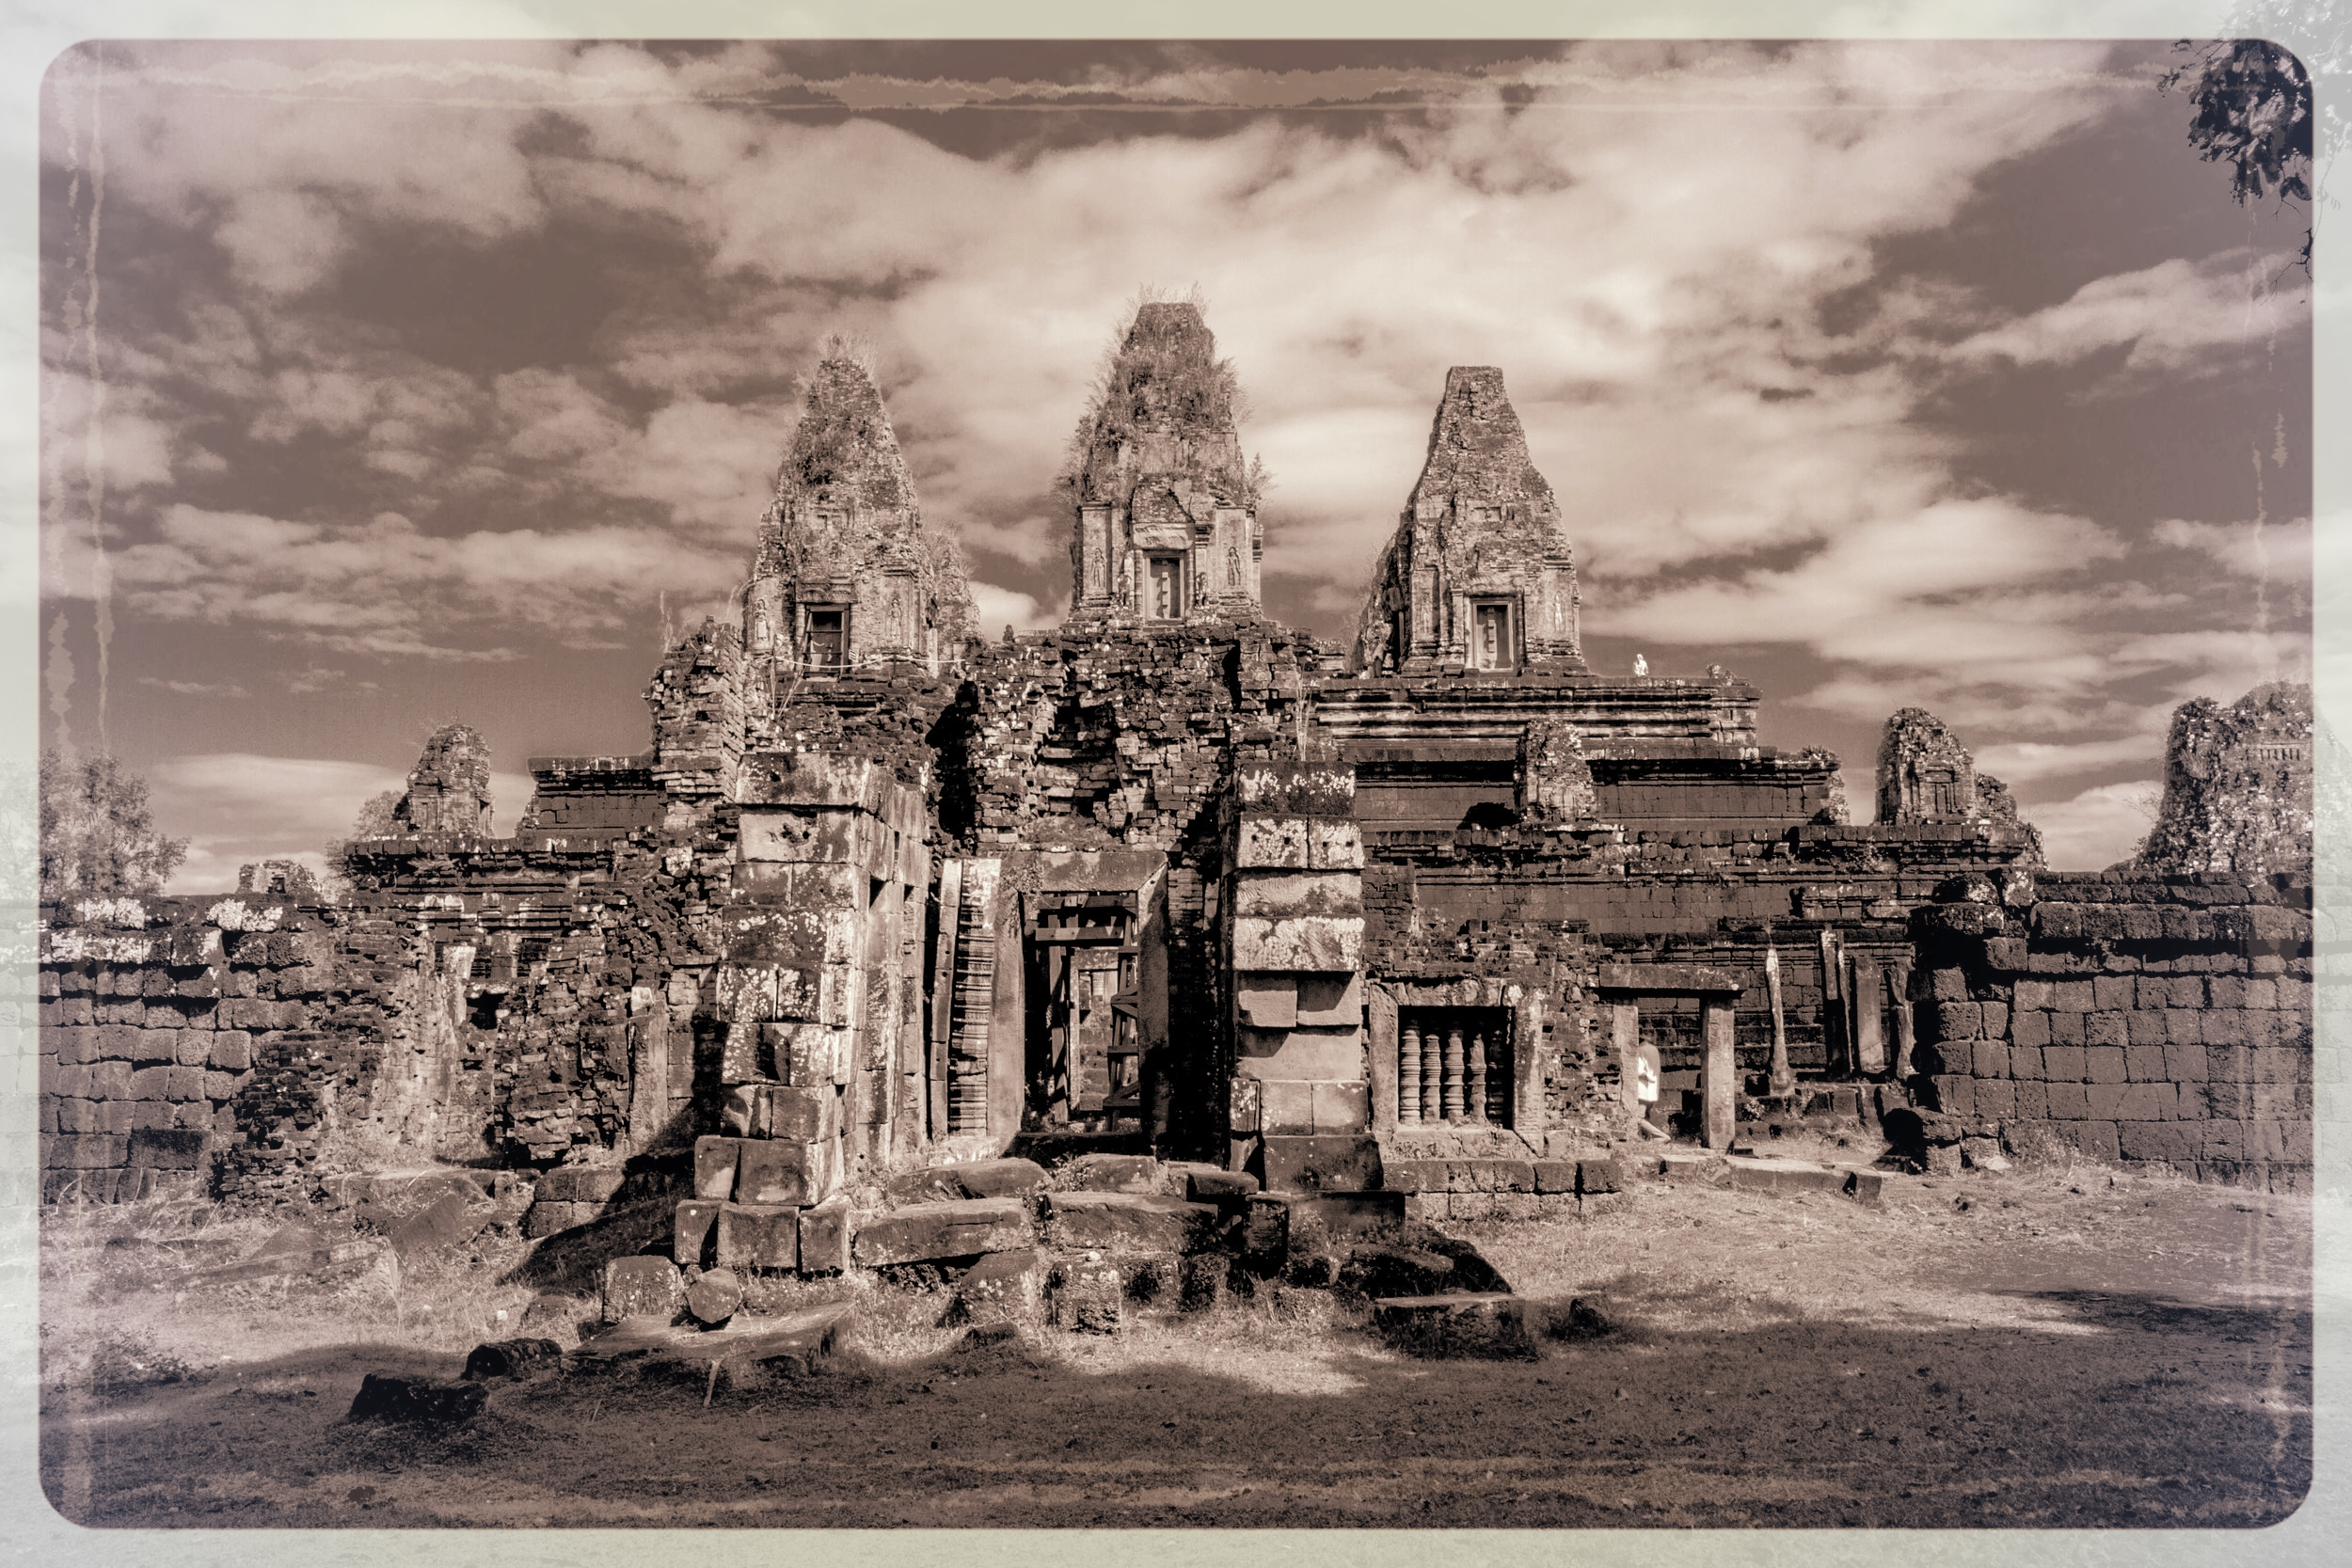 Prae Rup Temple, Angkor, is located just south of the East Baray, or eastern reservoir, and is featured in Part 2. ©ashleycowie.com